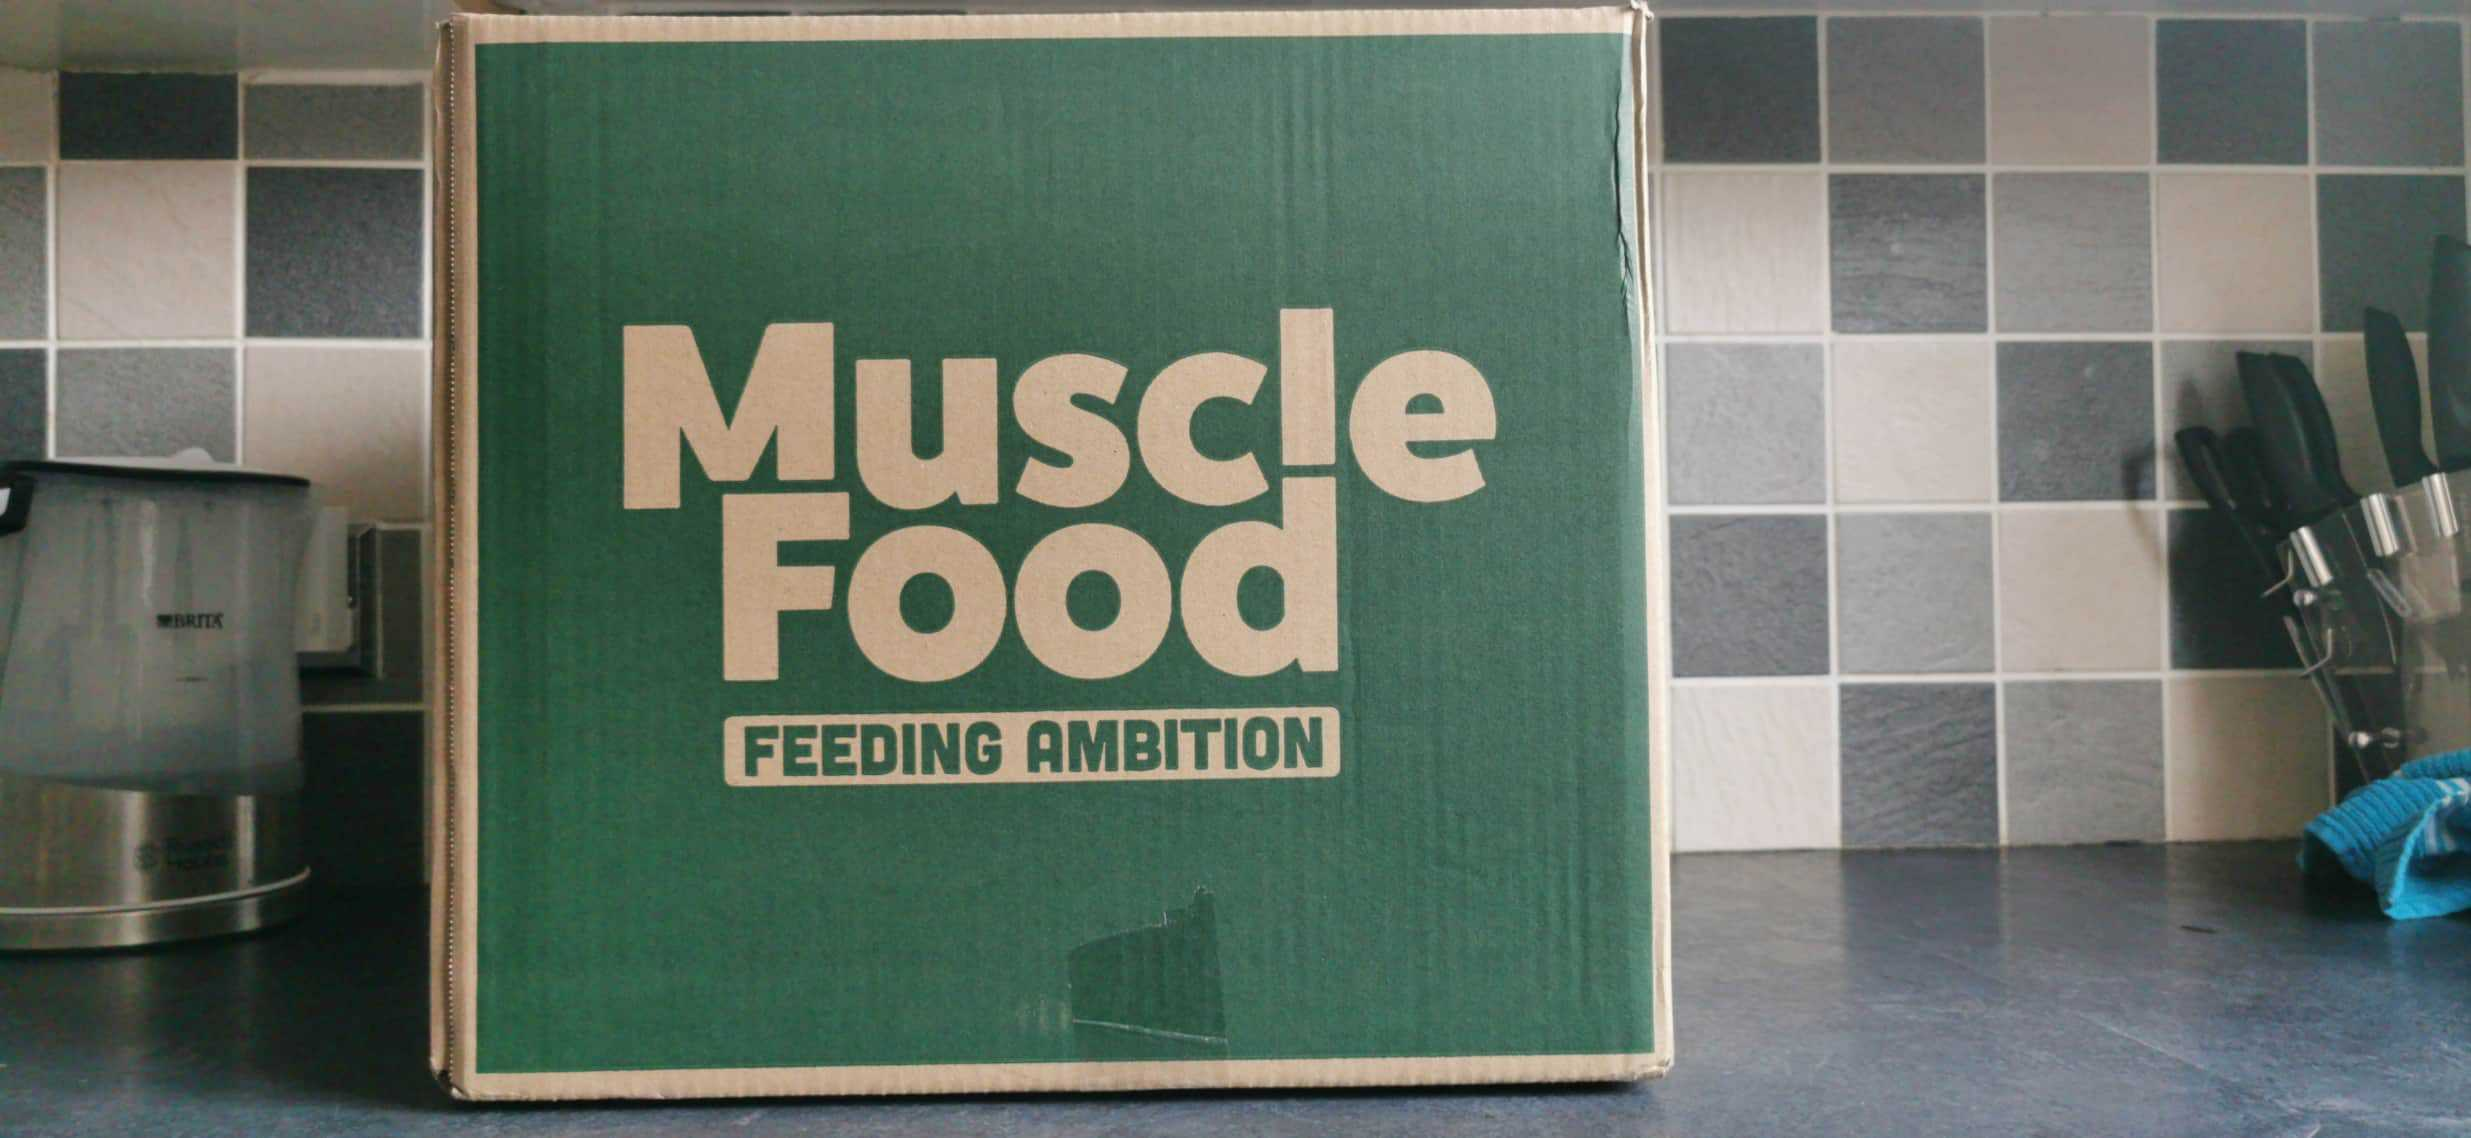 Musclefood Hamper Review